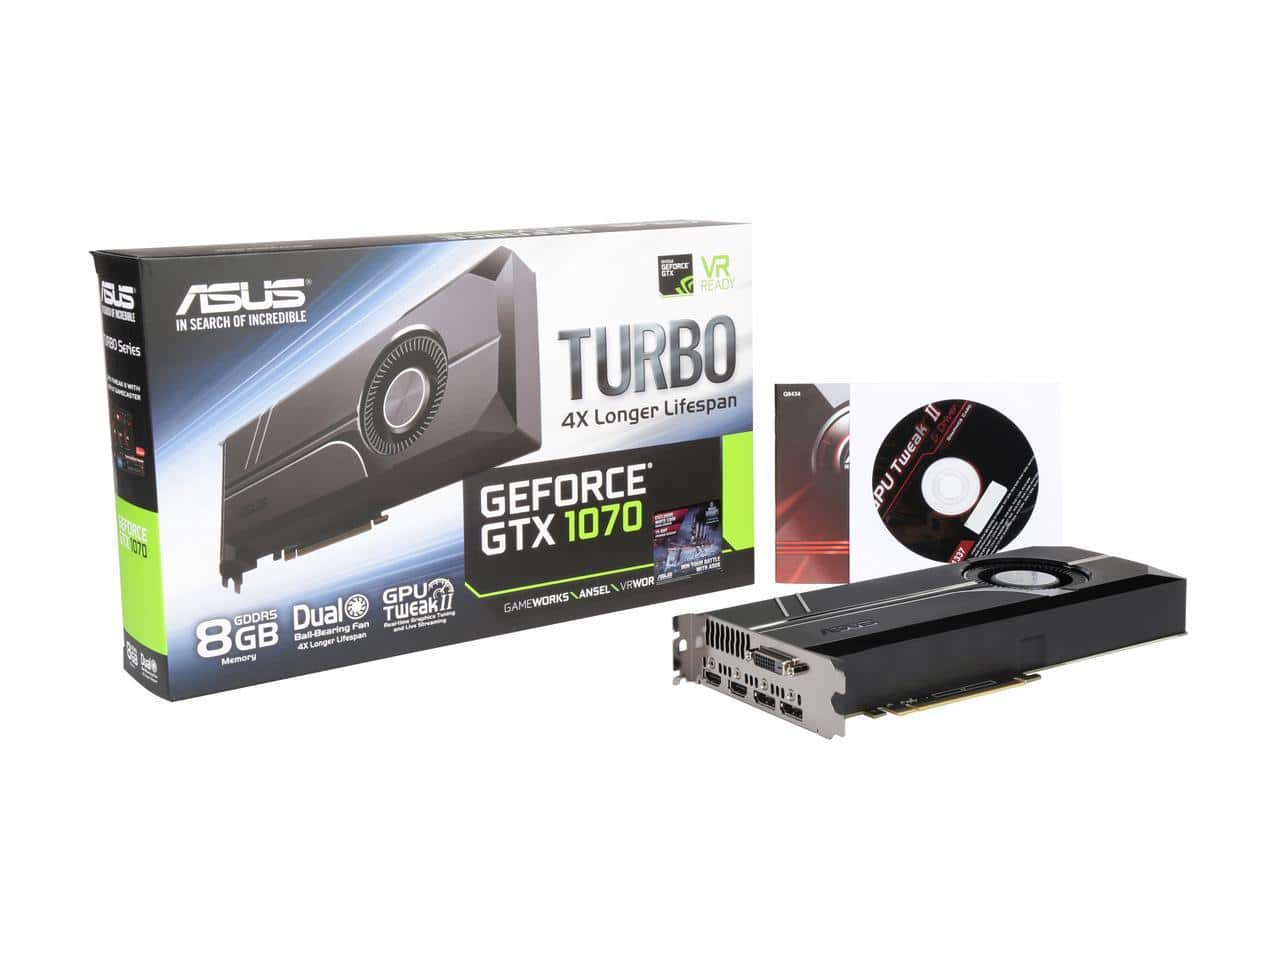 ASUS GeForce GTX 1070 Turbo 8GB 256-Bit GDDR5 Video Card + Everspace (PCDD) $374.99 w/ MasterPass Checkout + Free Shipping (Valid 8/7 Only)